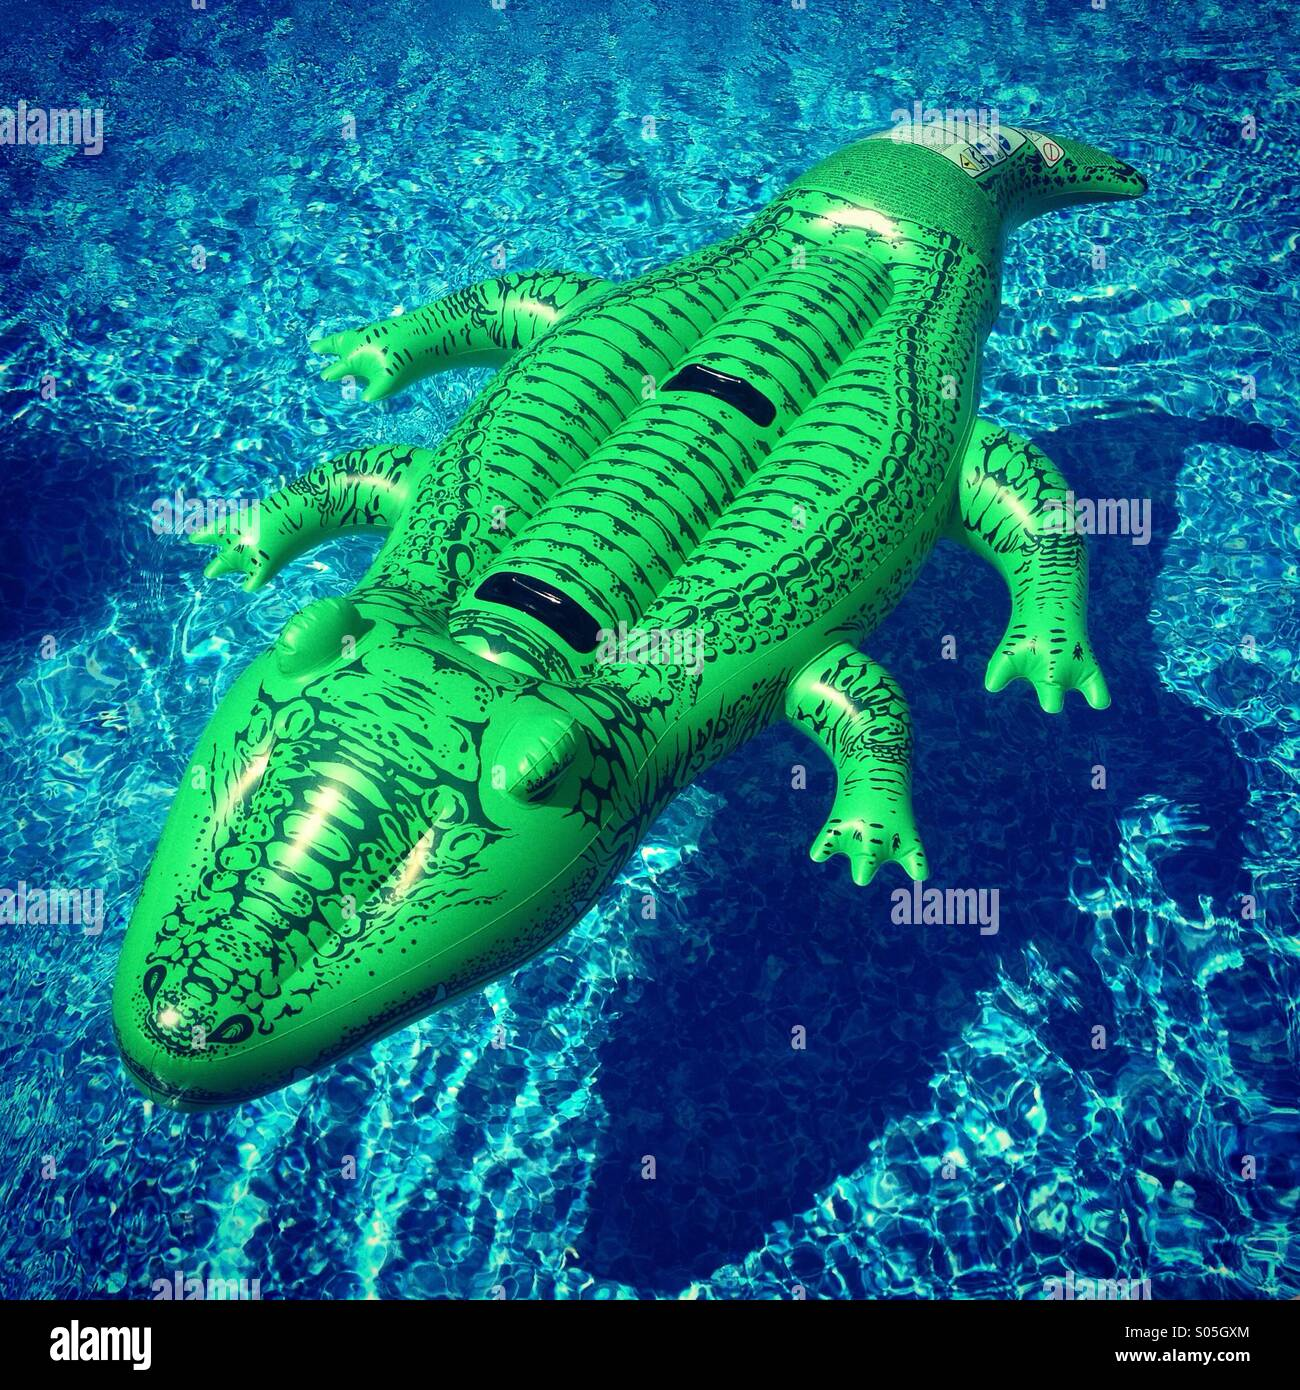 Inflatable Alligator Floating Above Its Shadow In The Pool.